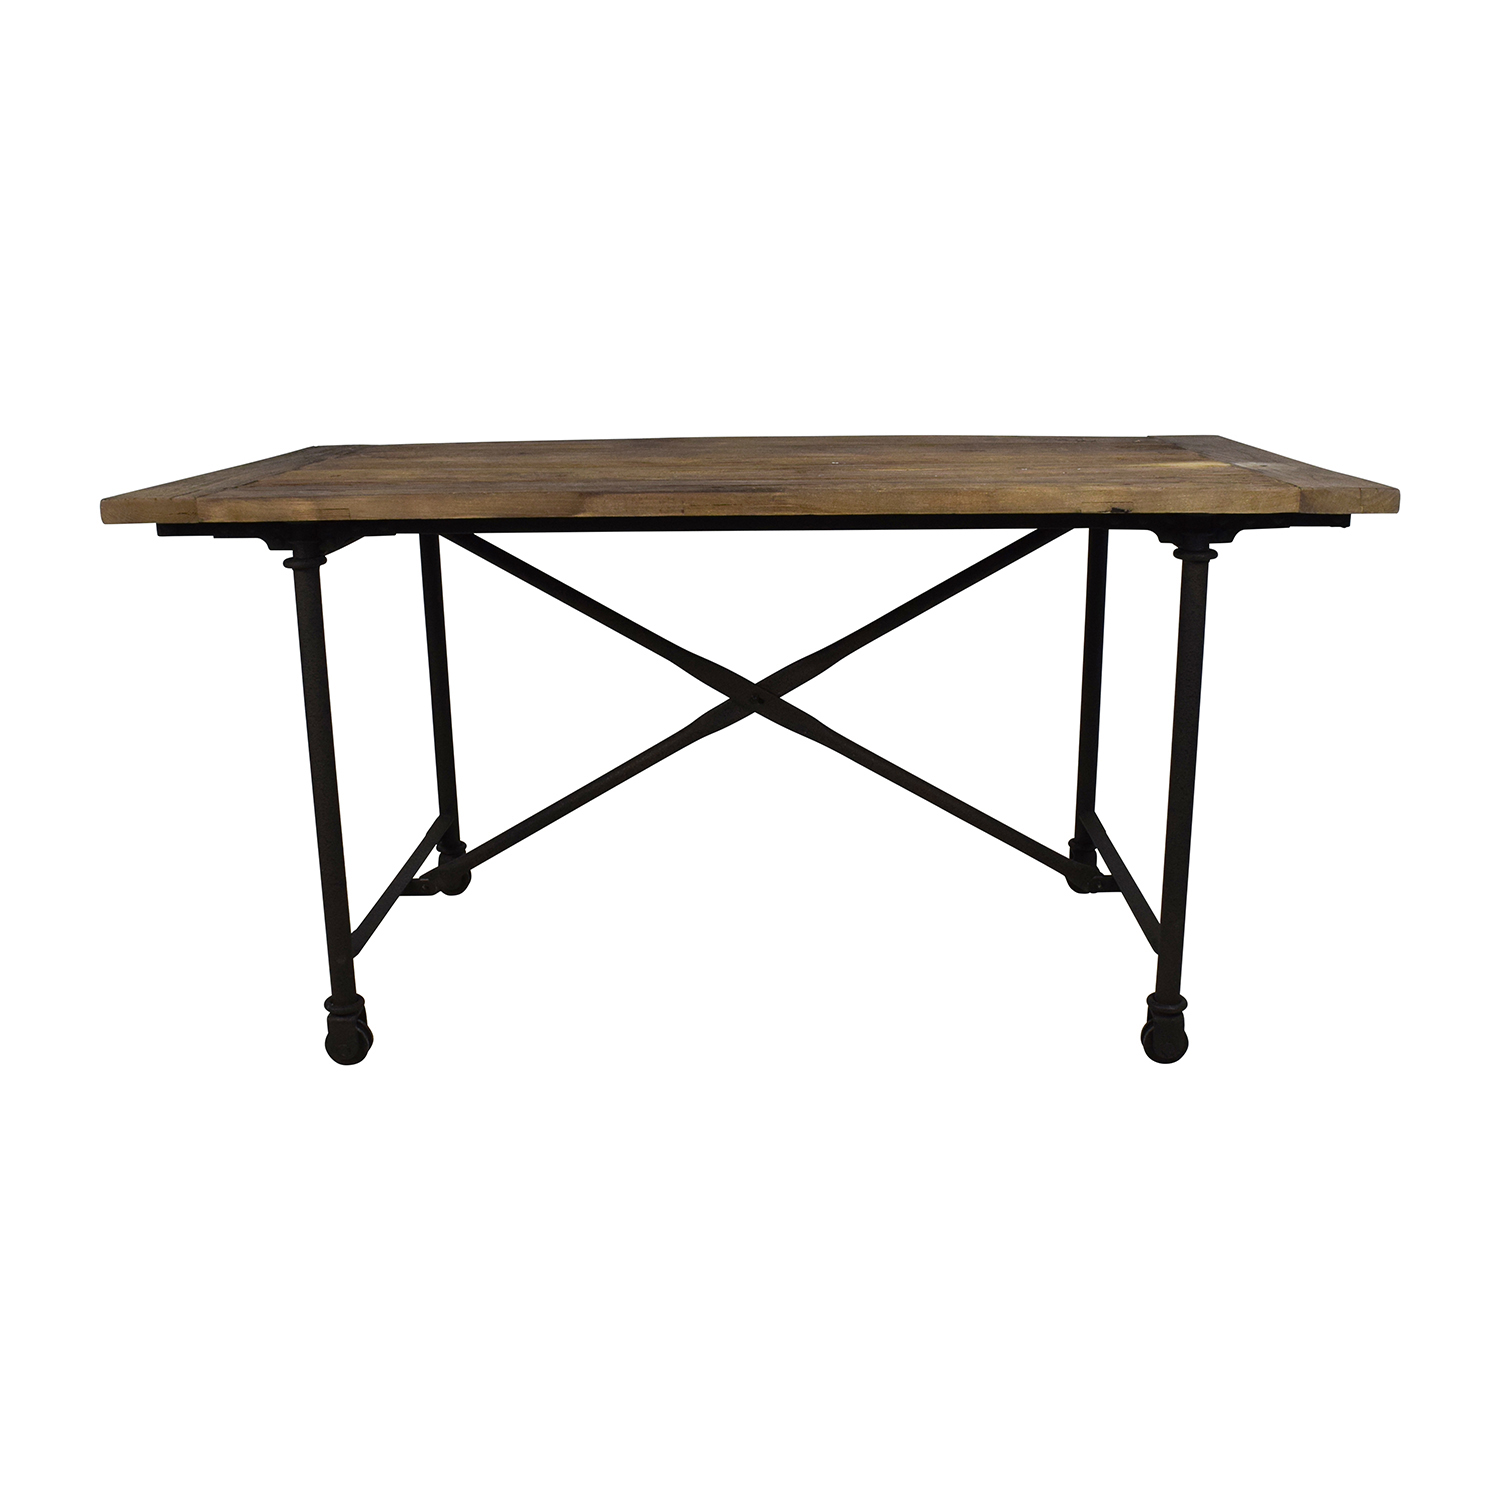 Restoration Hardware Restoration Hardware Reclaimed Natural Elm Dining Table Brown